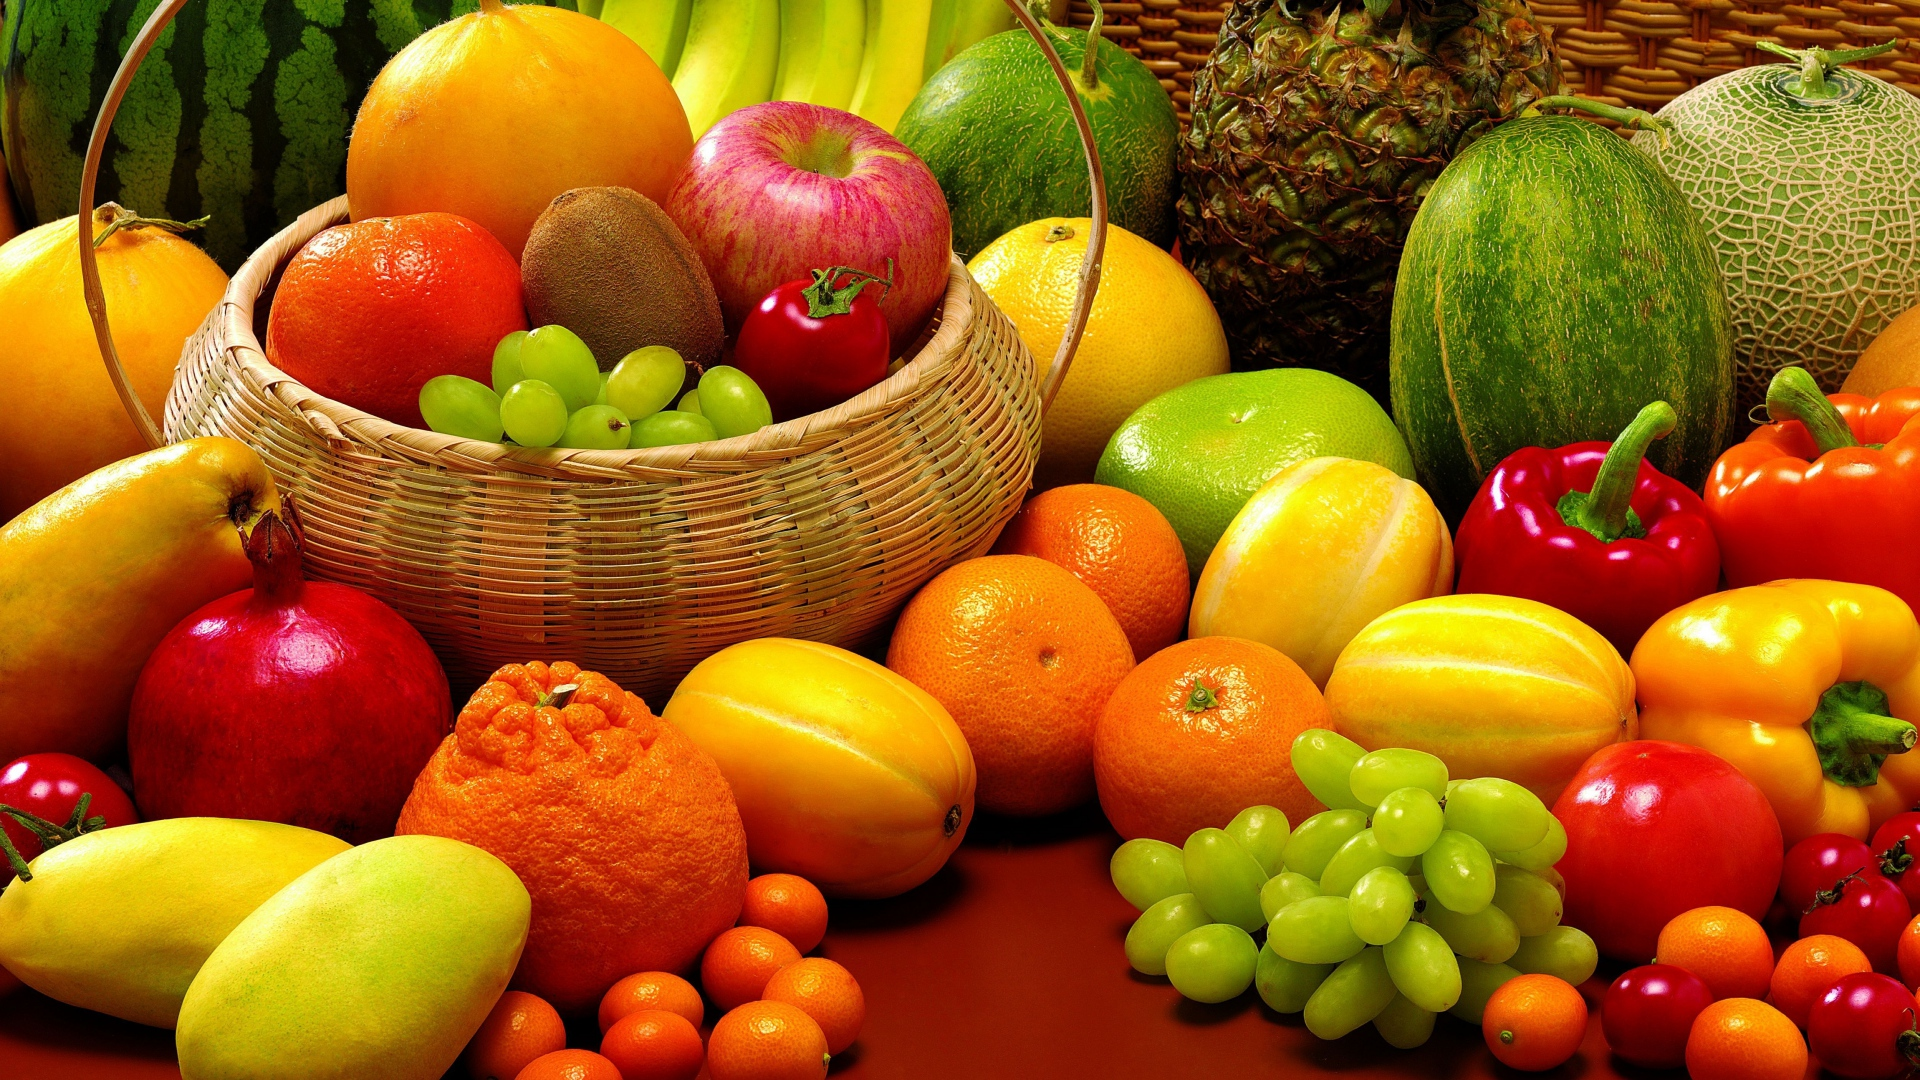 fruit-1920x1080-for-windows-wallpaper-wp3805678